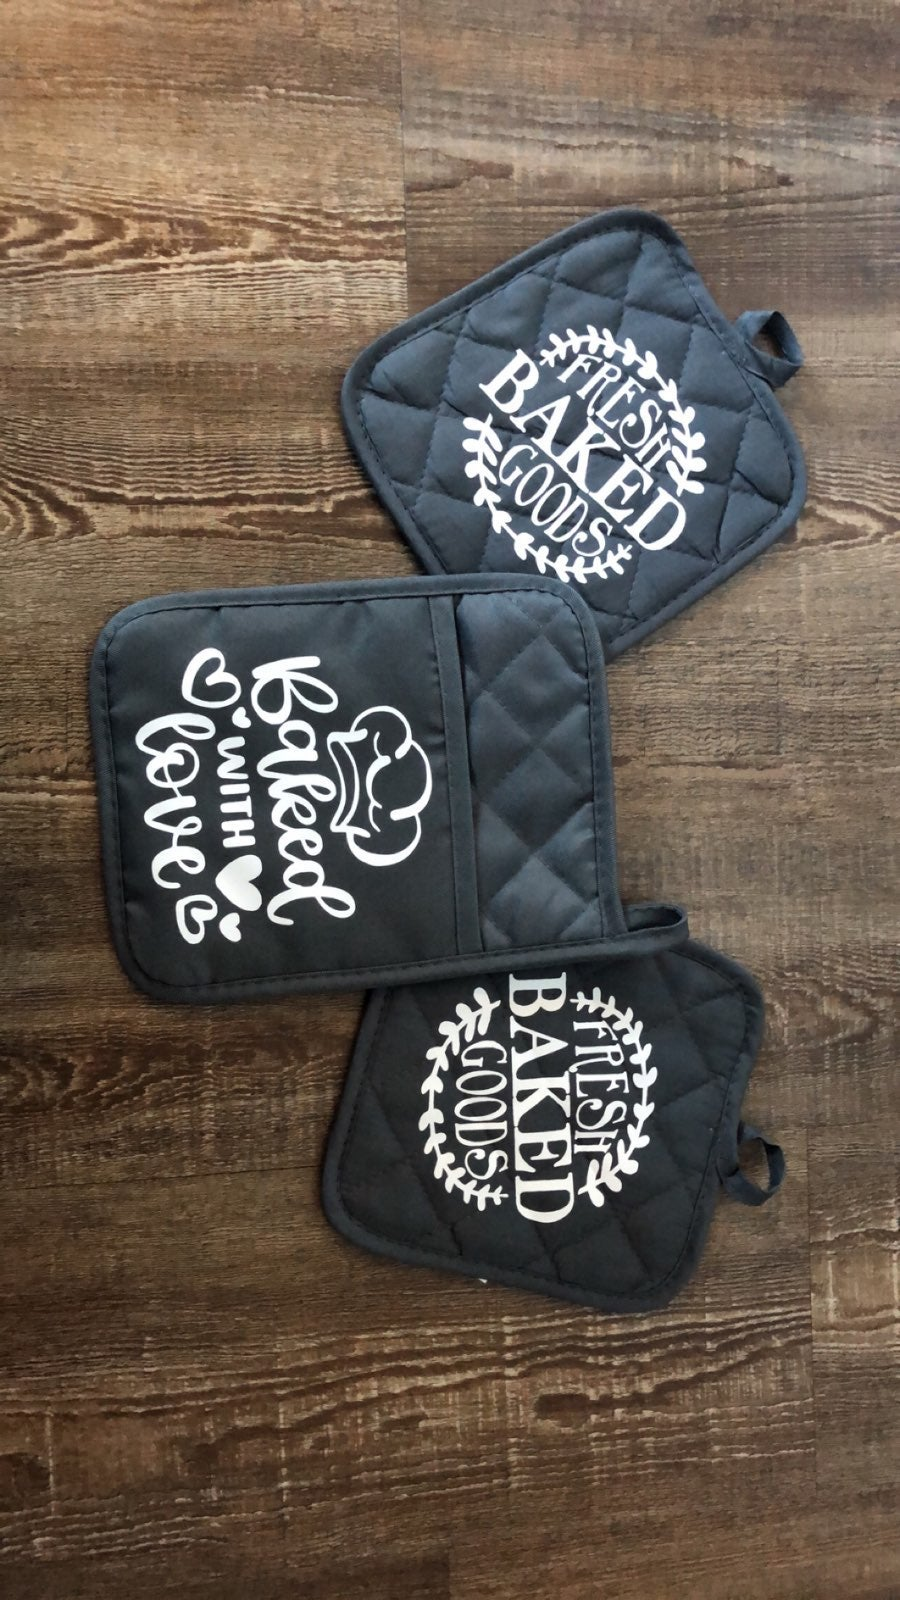 Homemade oven mitts